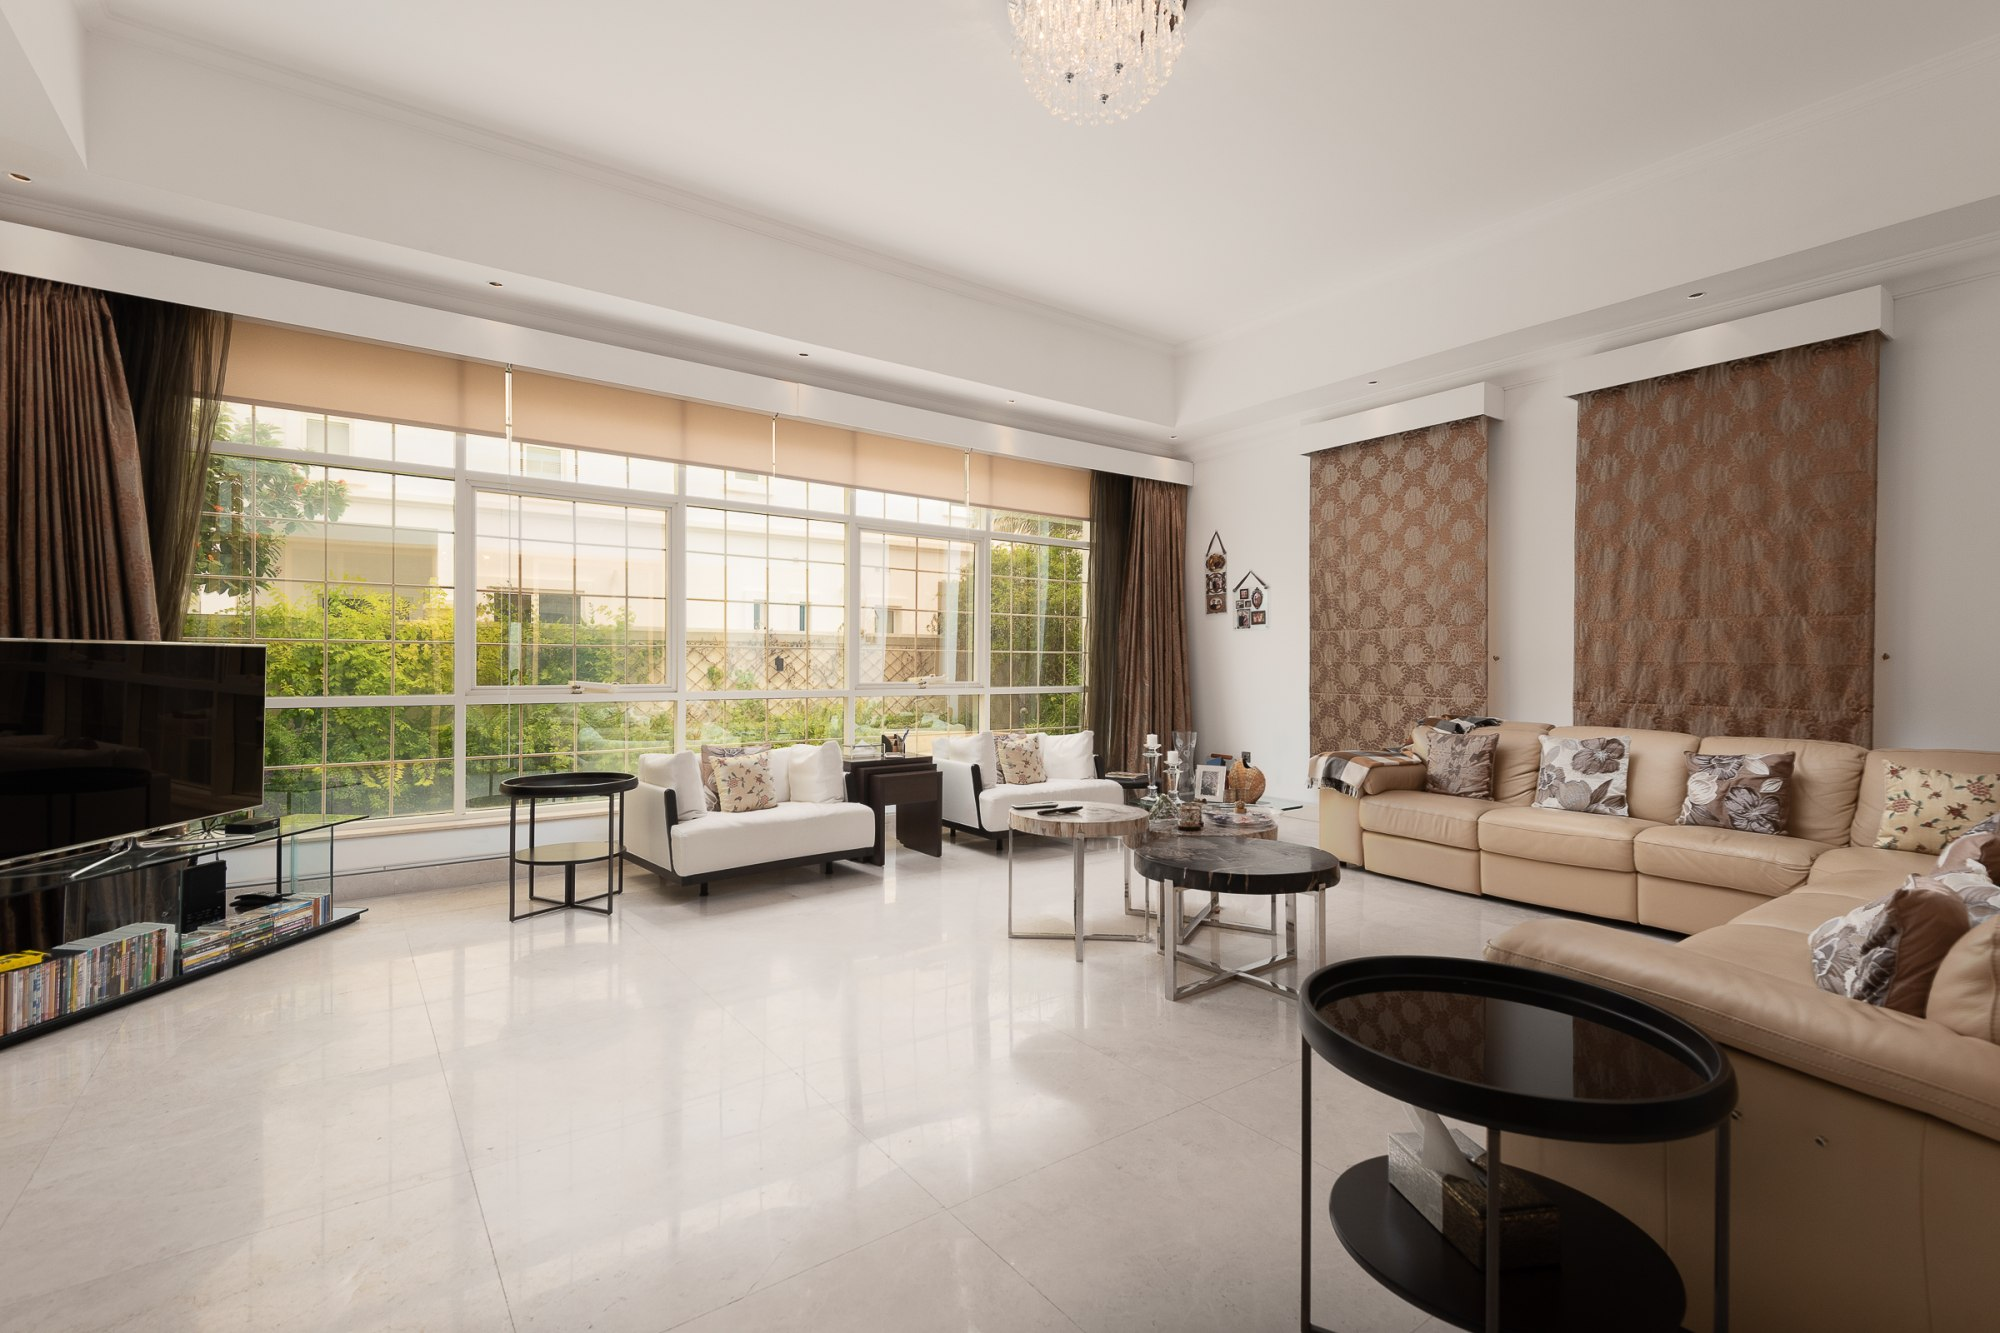 Exquisite villa | Modern Interiors for SALE